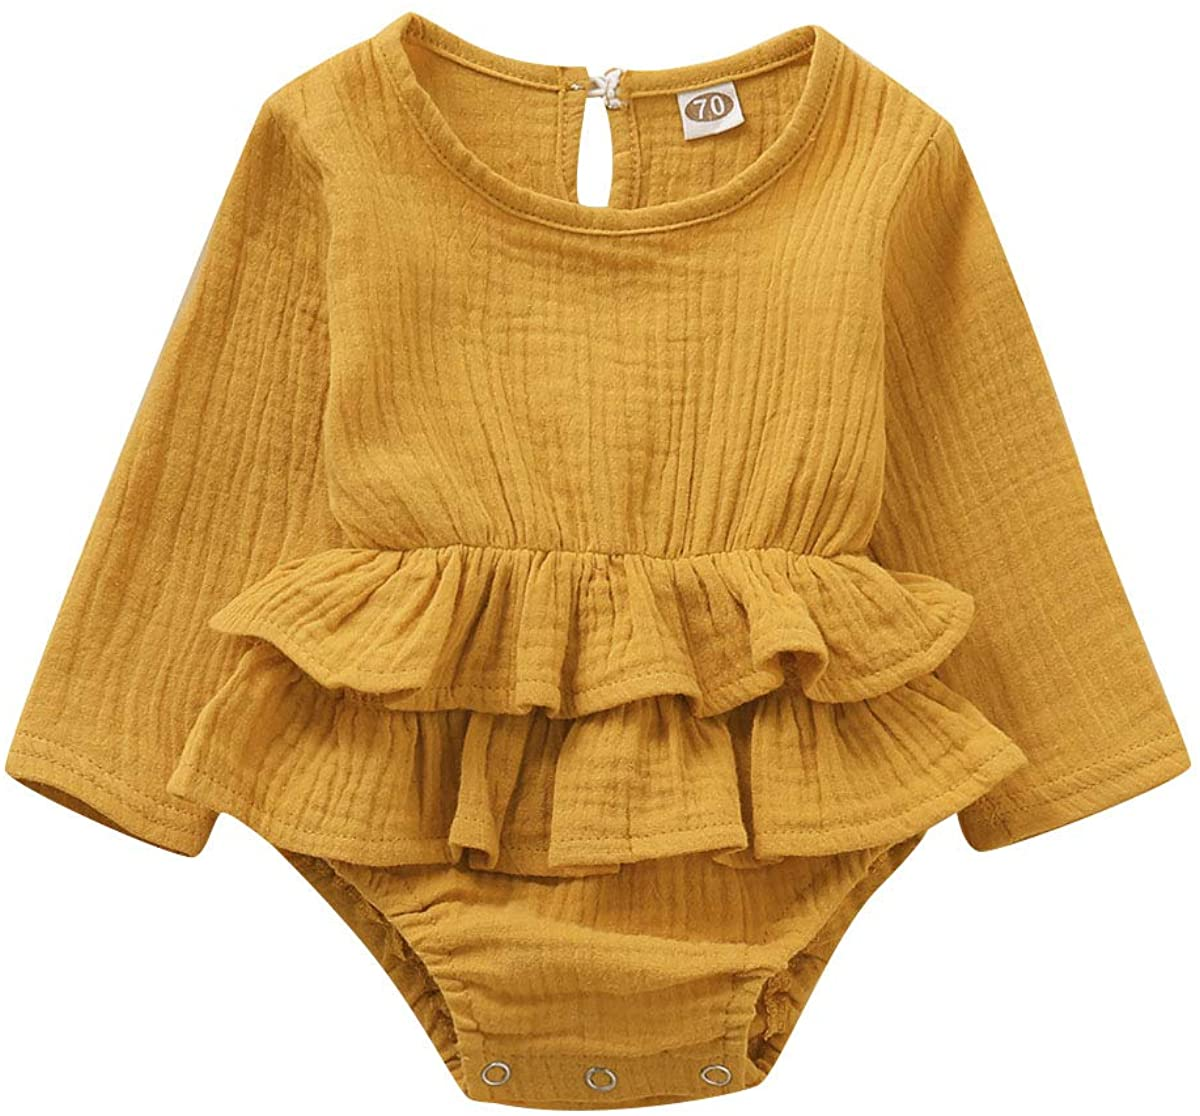 Chloefairy Baby Bodysuit Onesies Infant Newborn Long Sleeve Solid Garment Tops for Girls Boys 0-18M T-35863